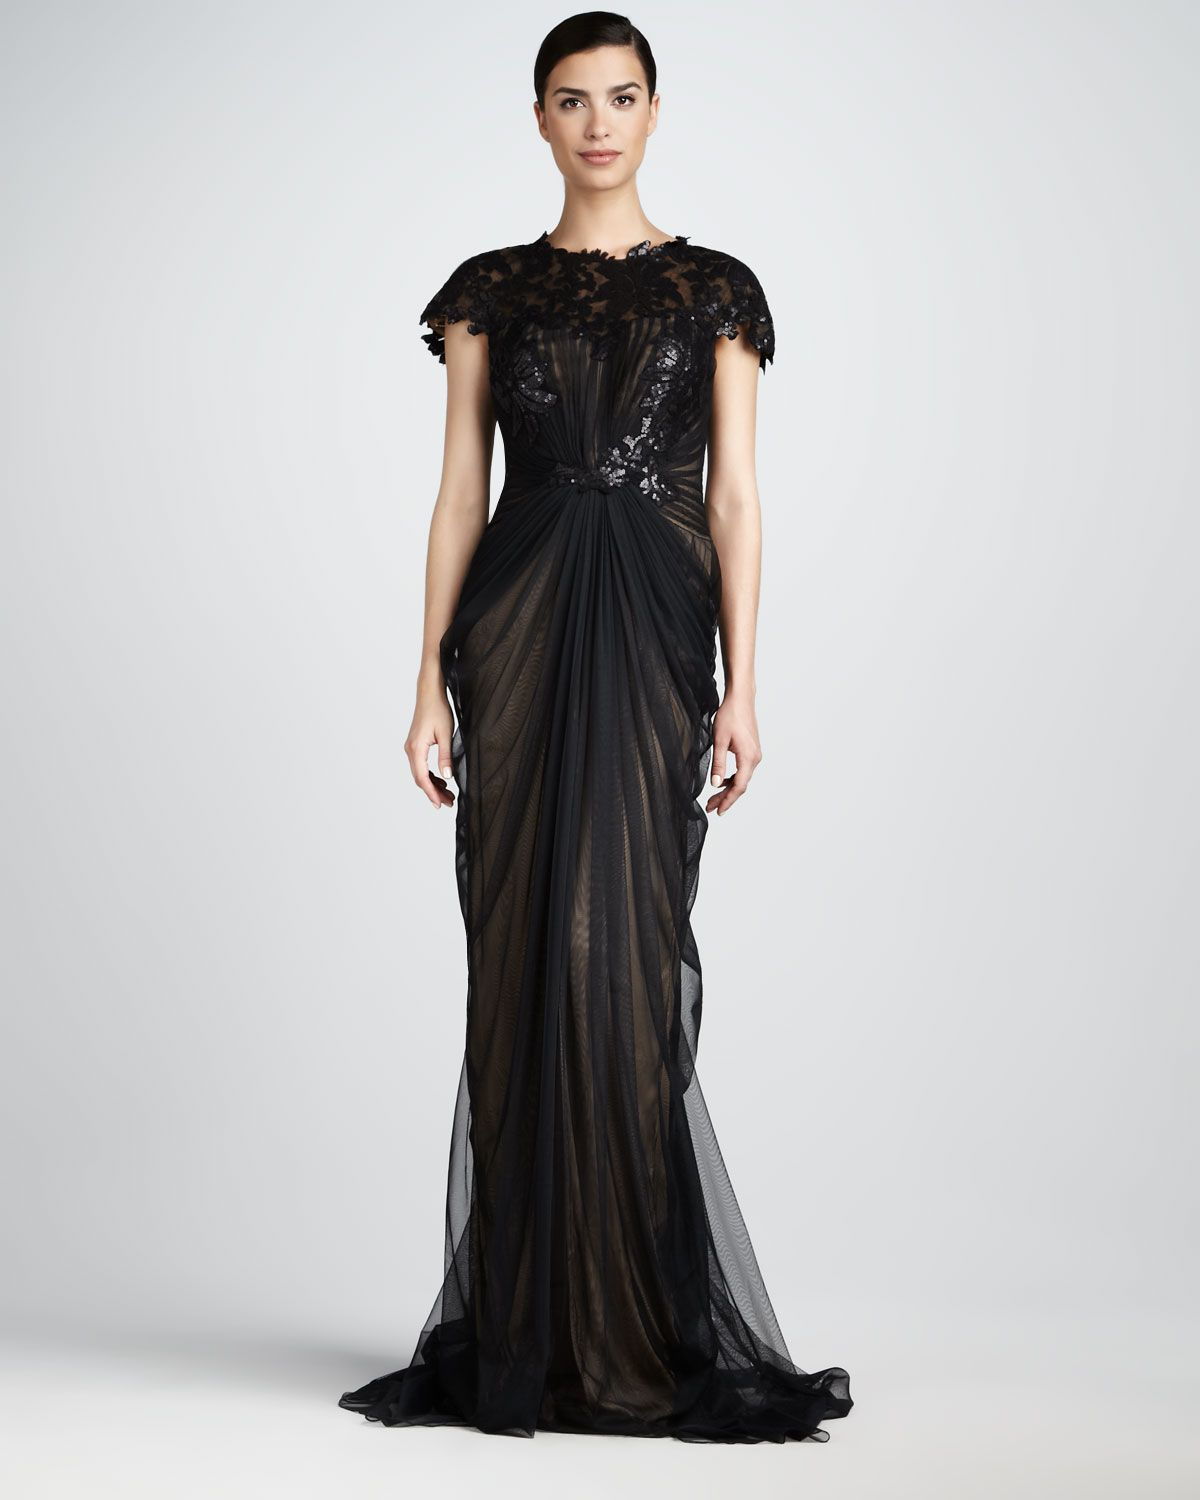 Best dresses to wear to a wedding reception  Tadashi Shoji Ruched LaceTop Gown  Neiman Marcus  The Black Tie